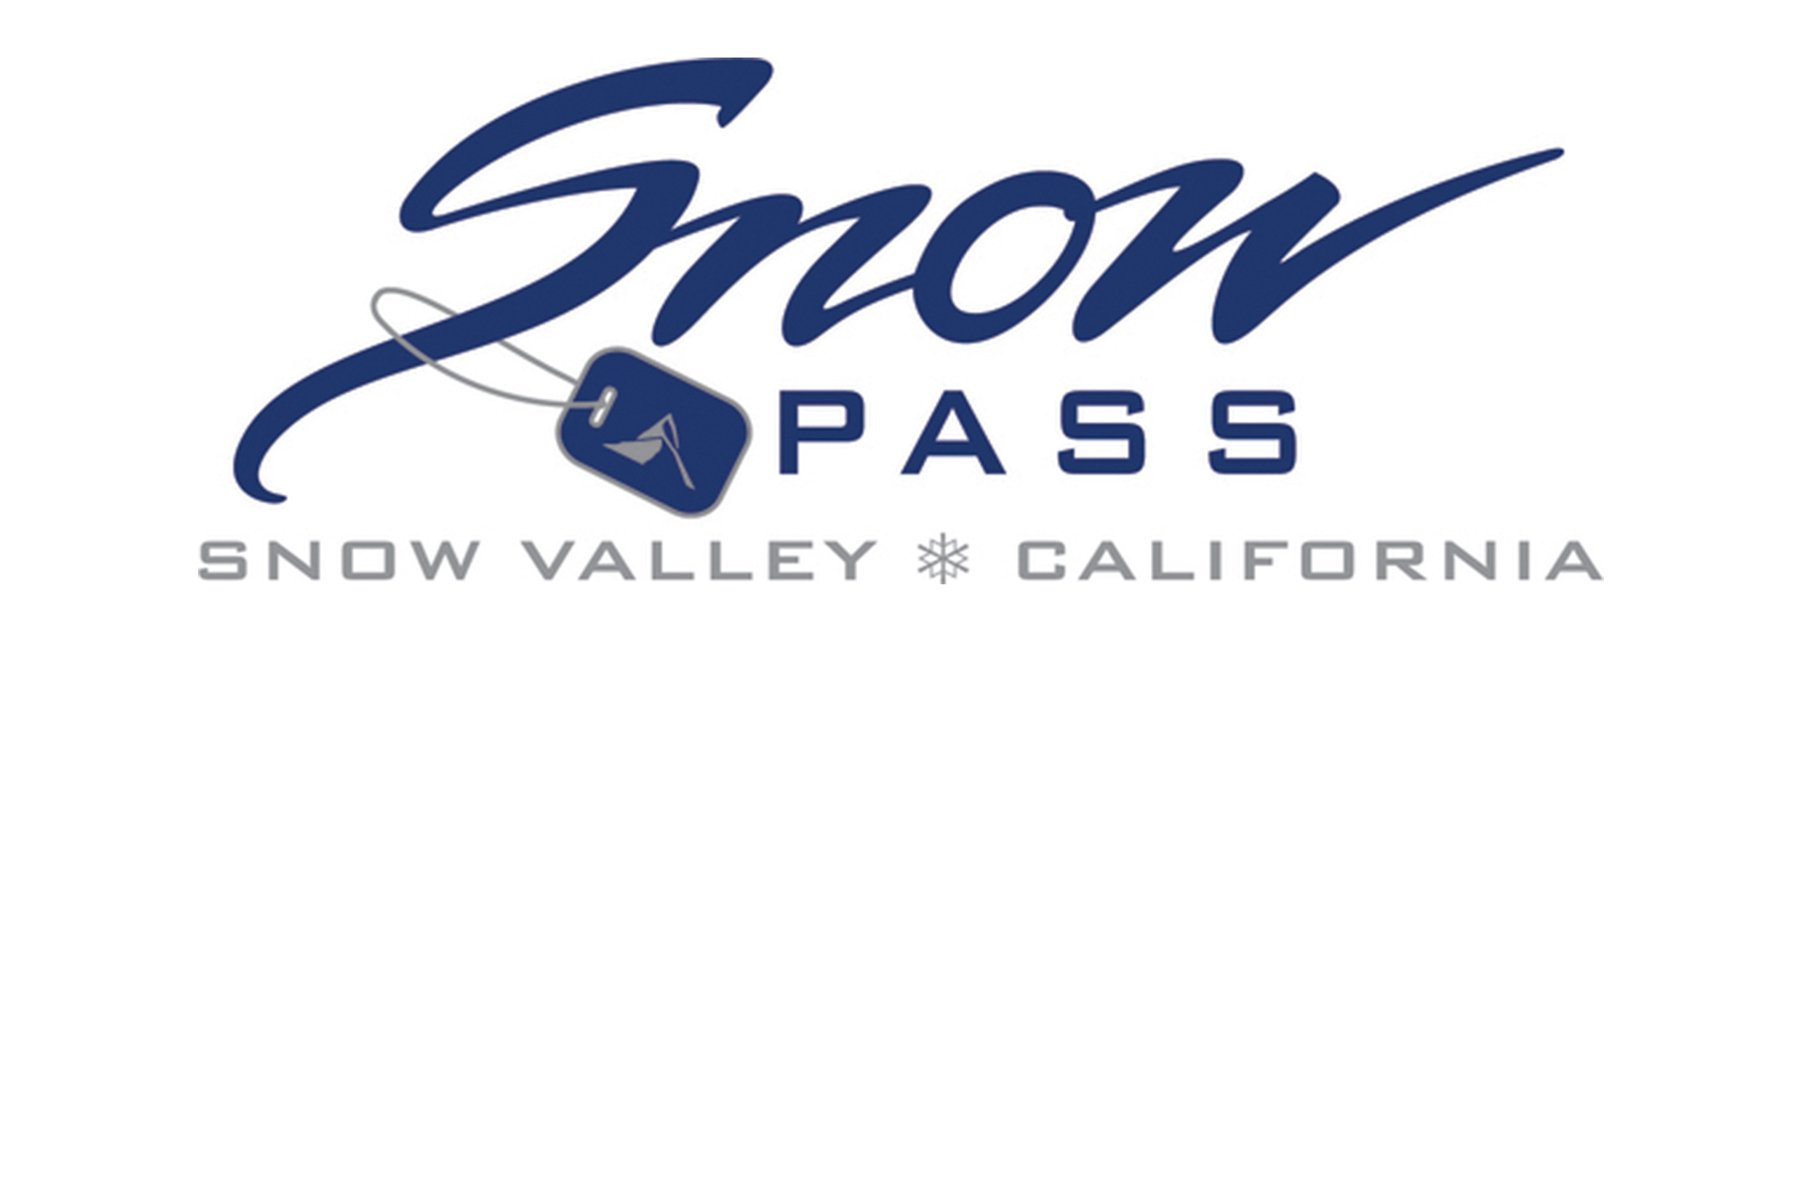 The Snow Valley Snow Pass